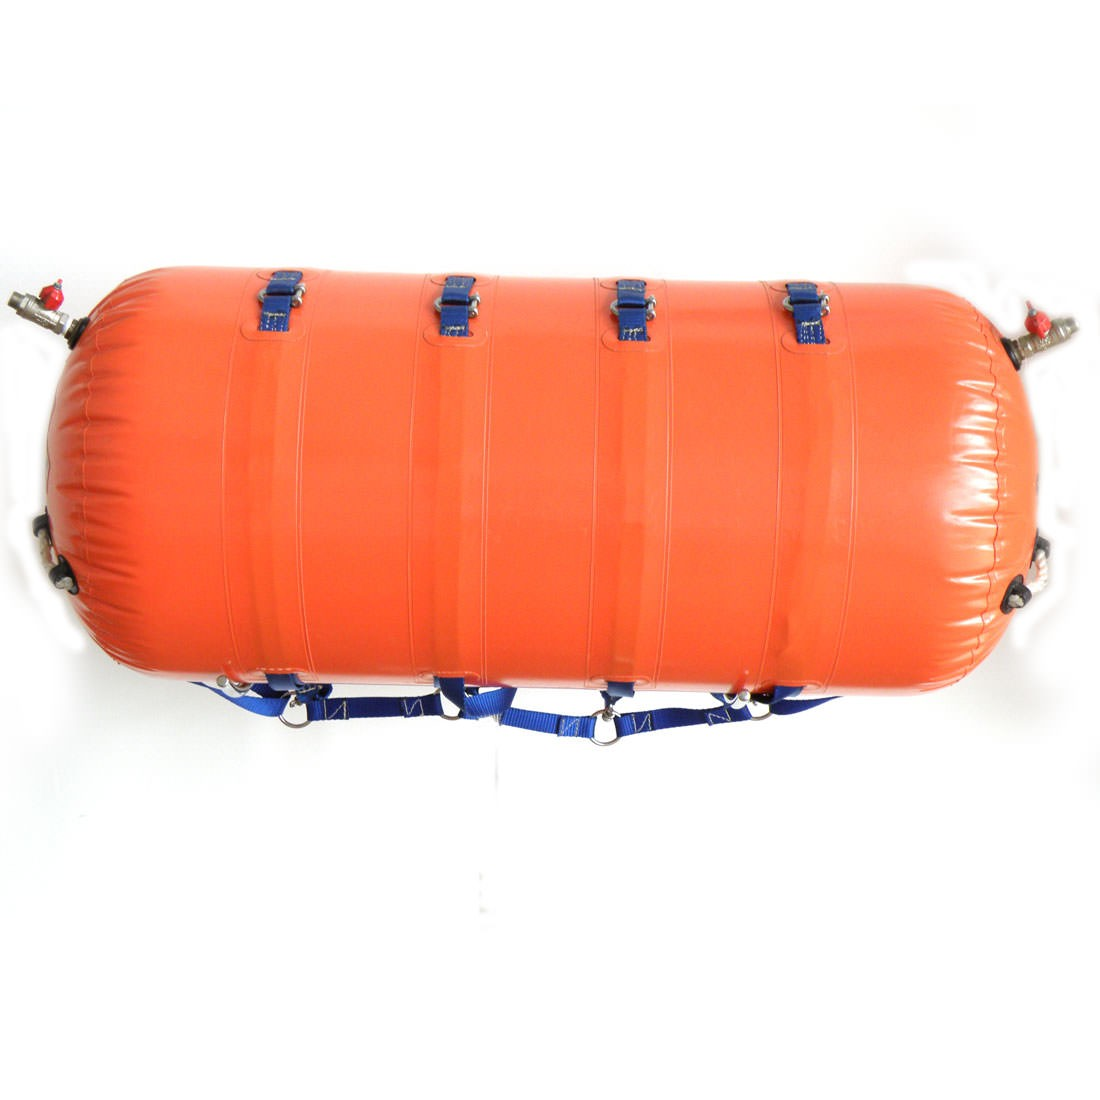 Seaflex 250kg Inflatable Buoyancy Unit